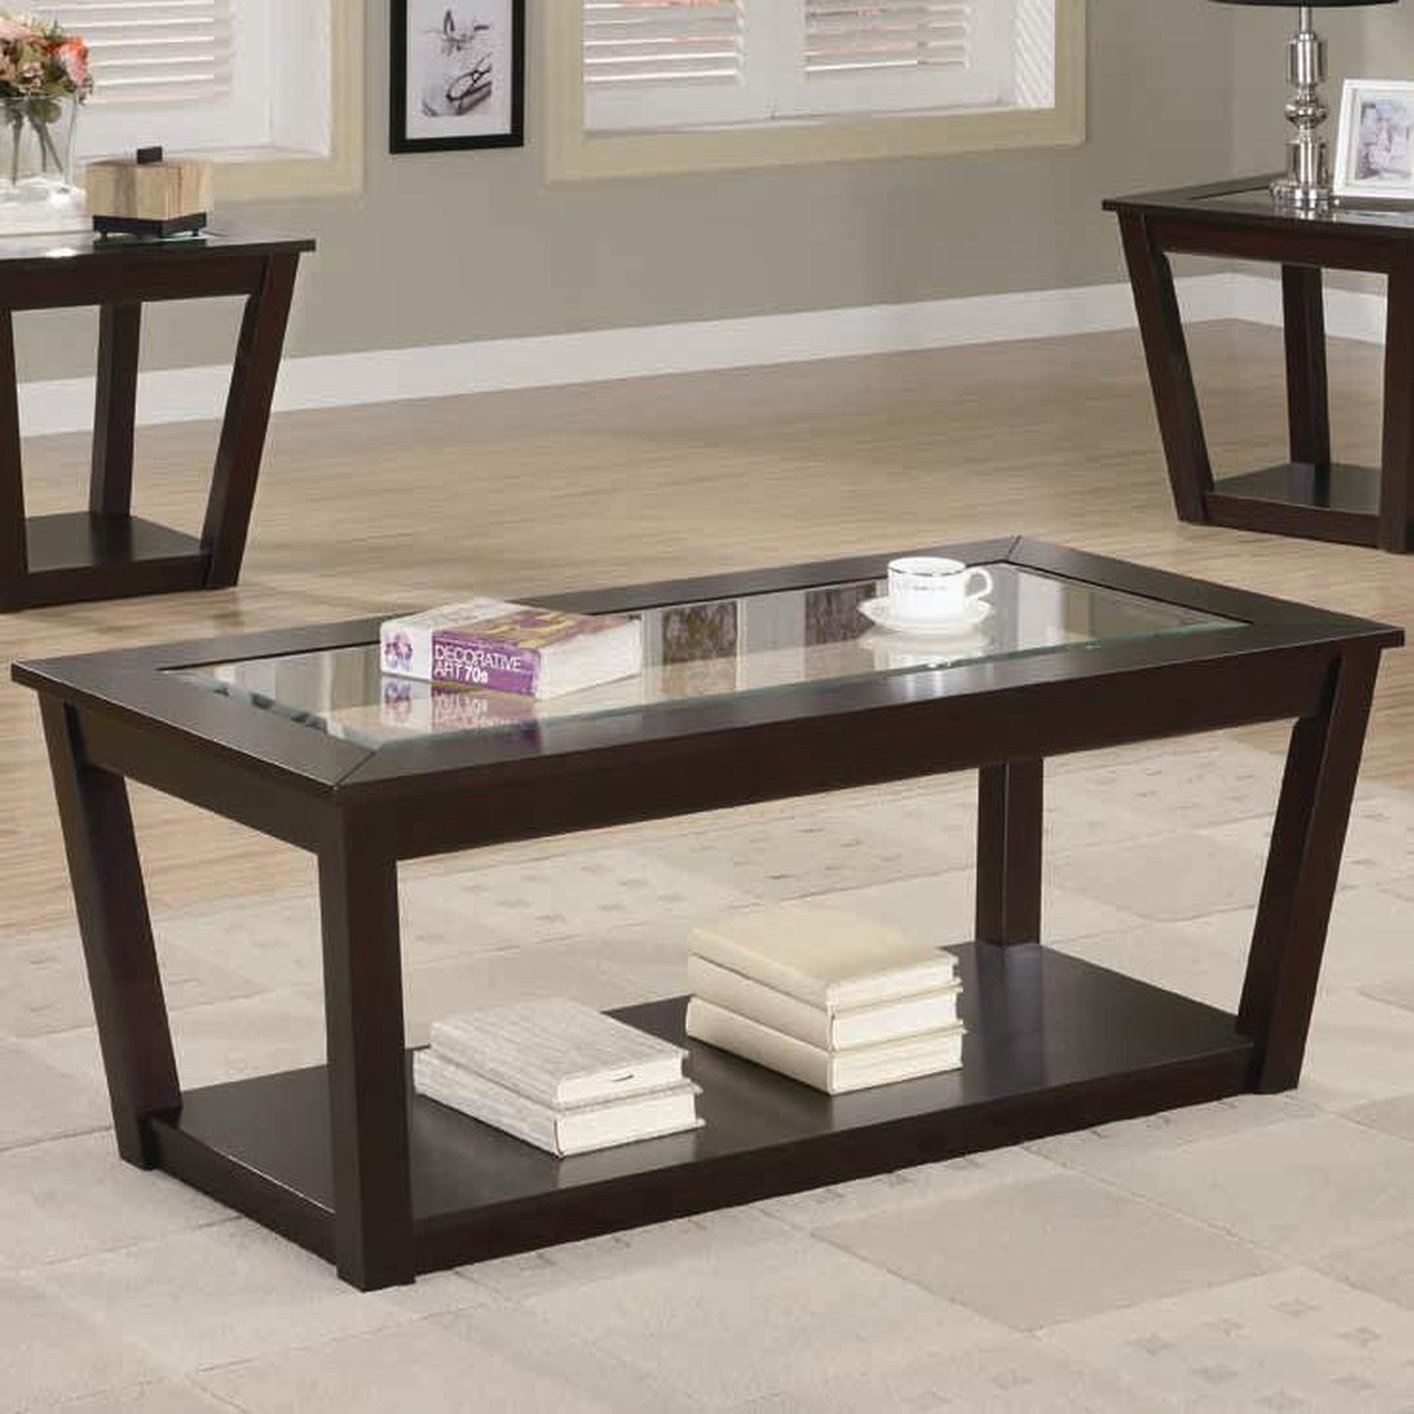 2017 best of contemporary furniture brown glass coffee table